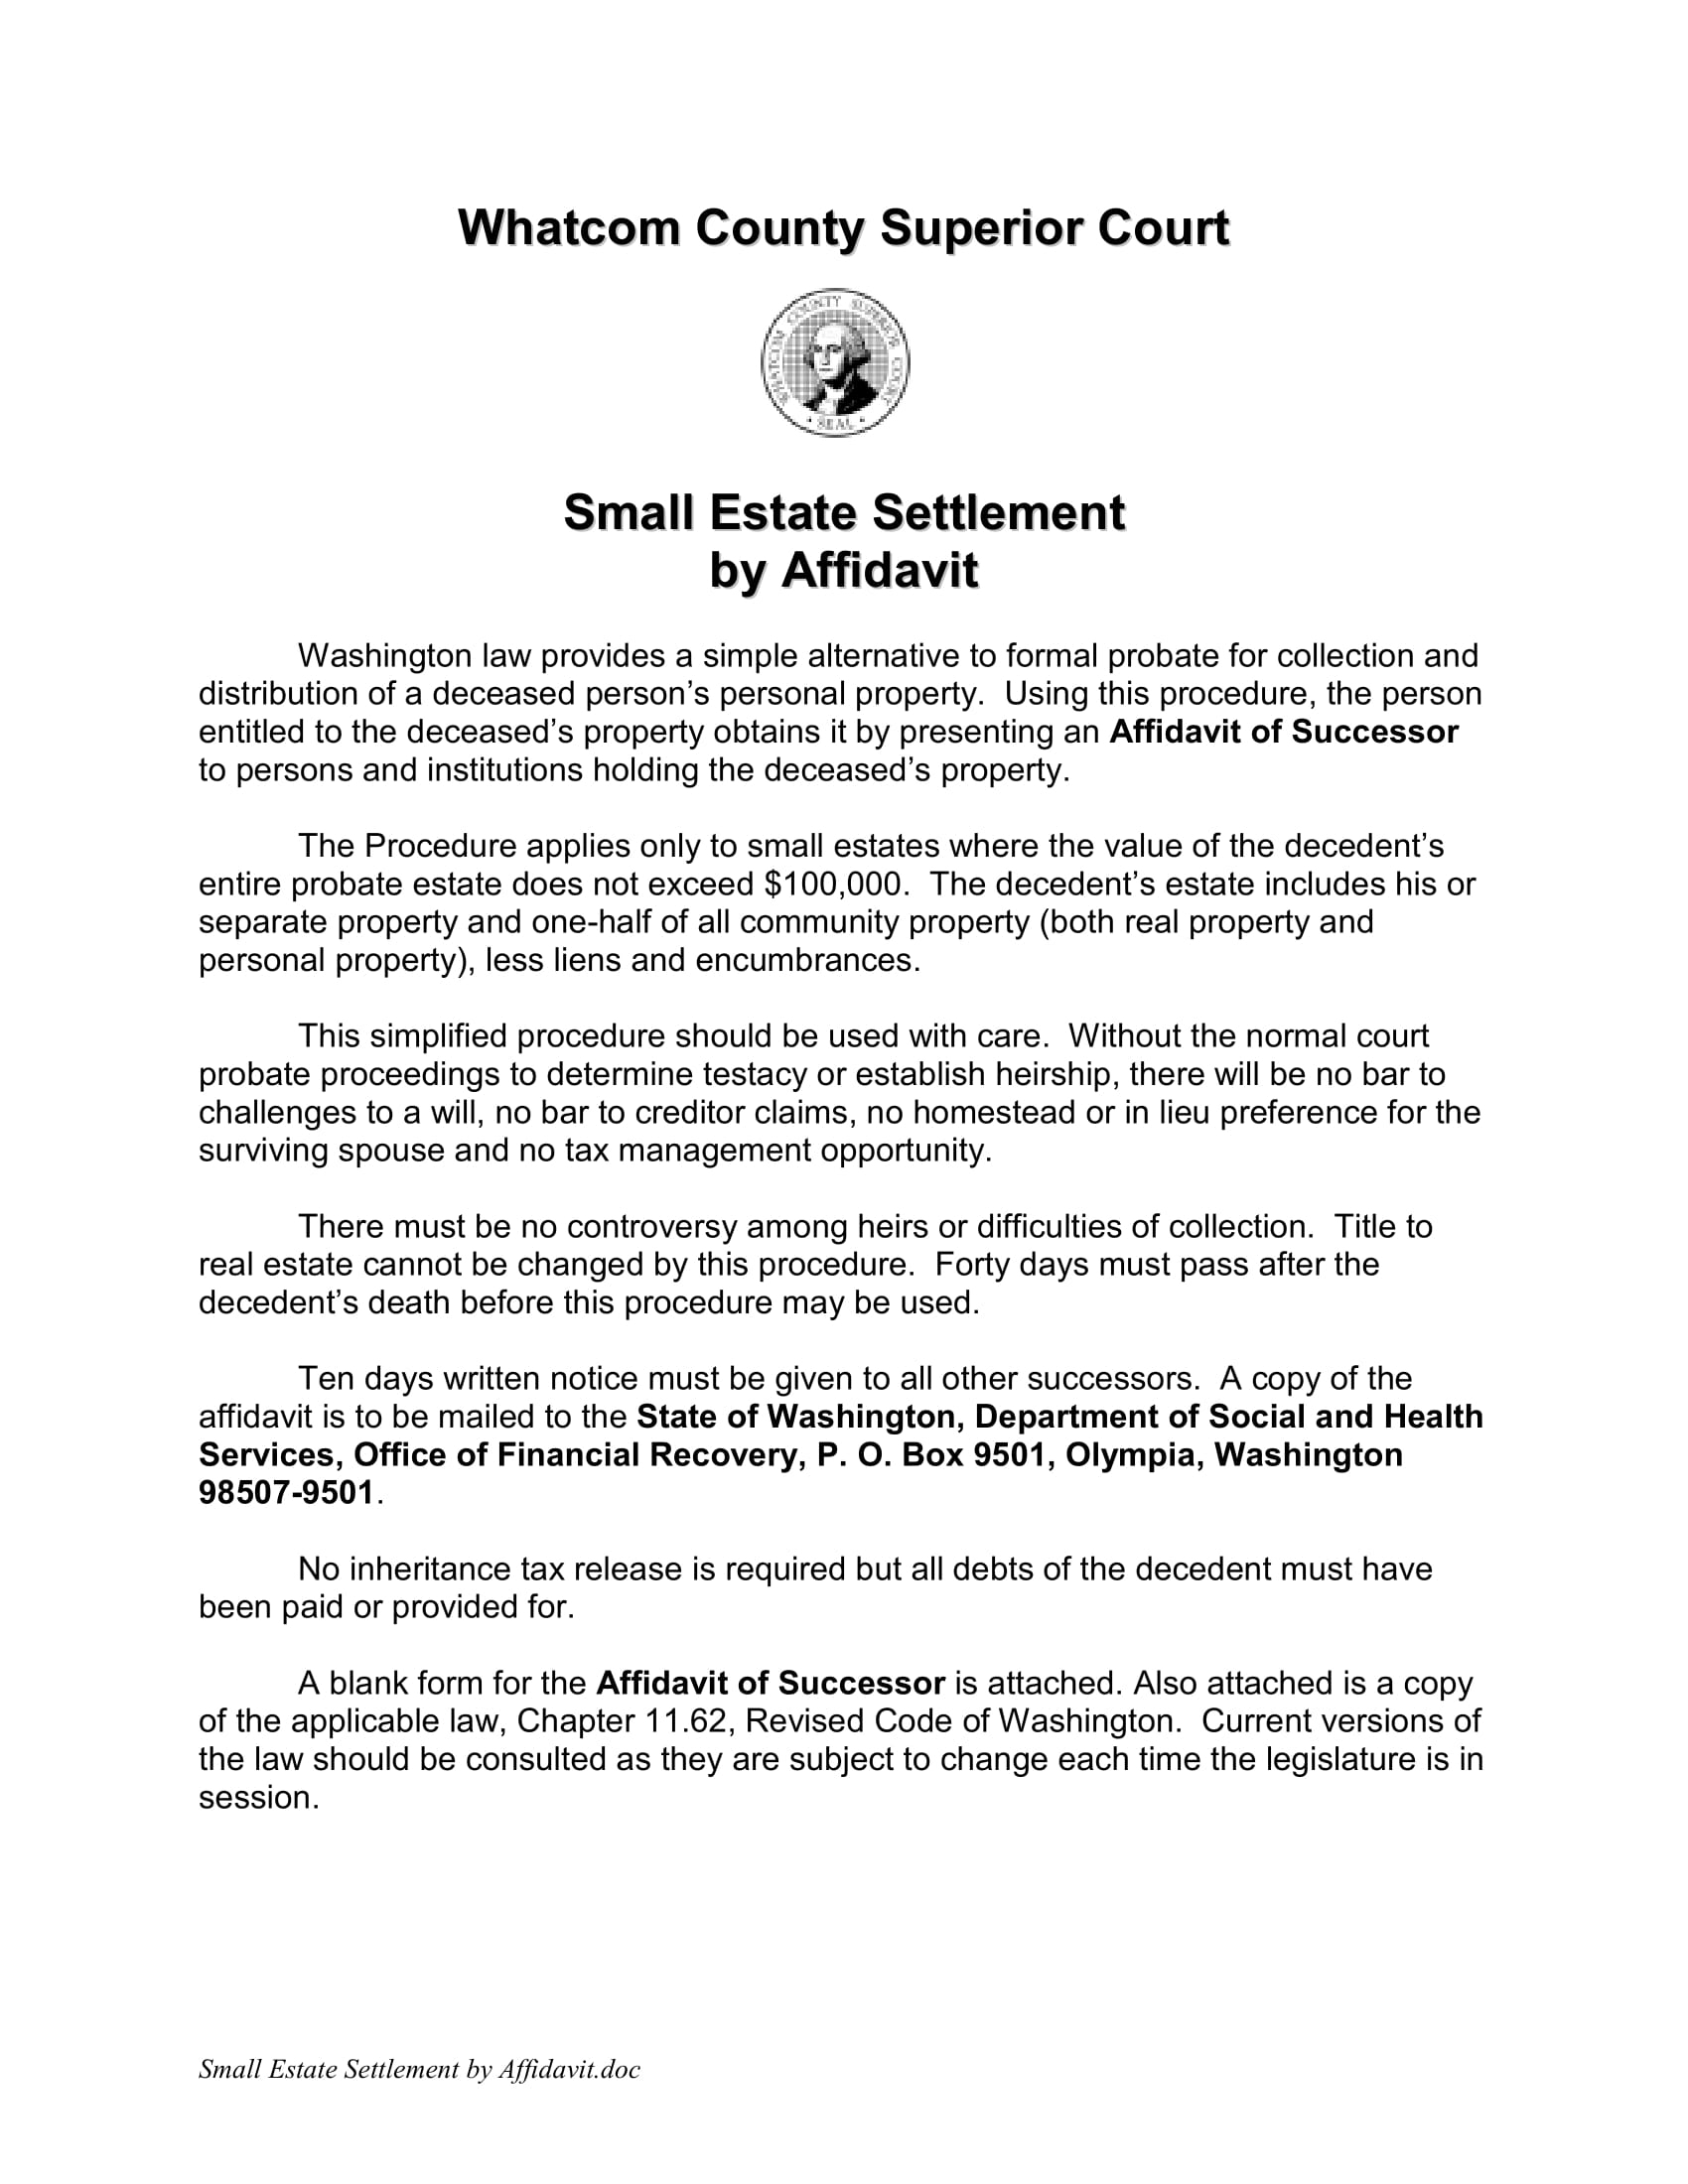 small estate settlement by affidavit